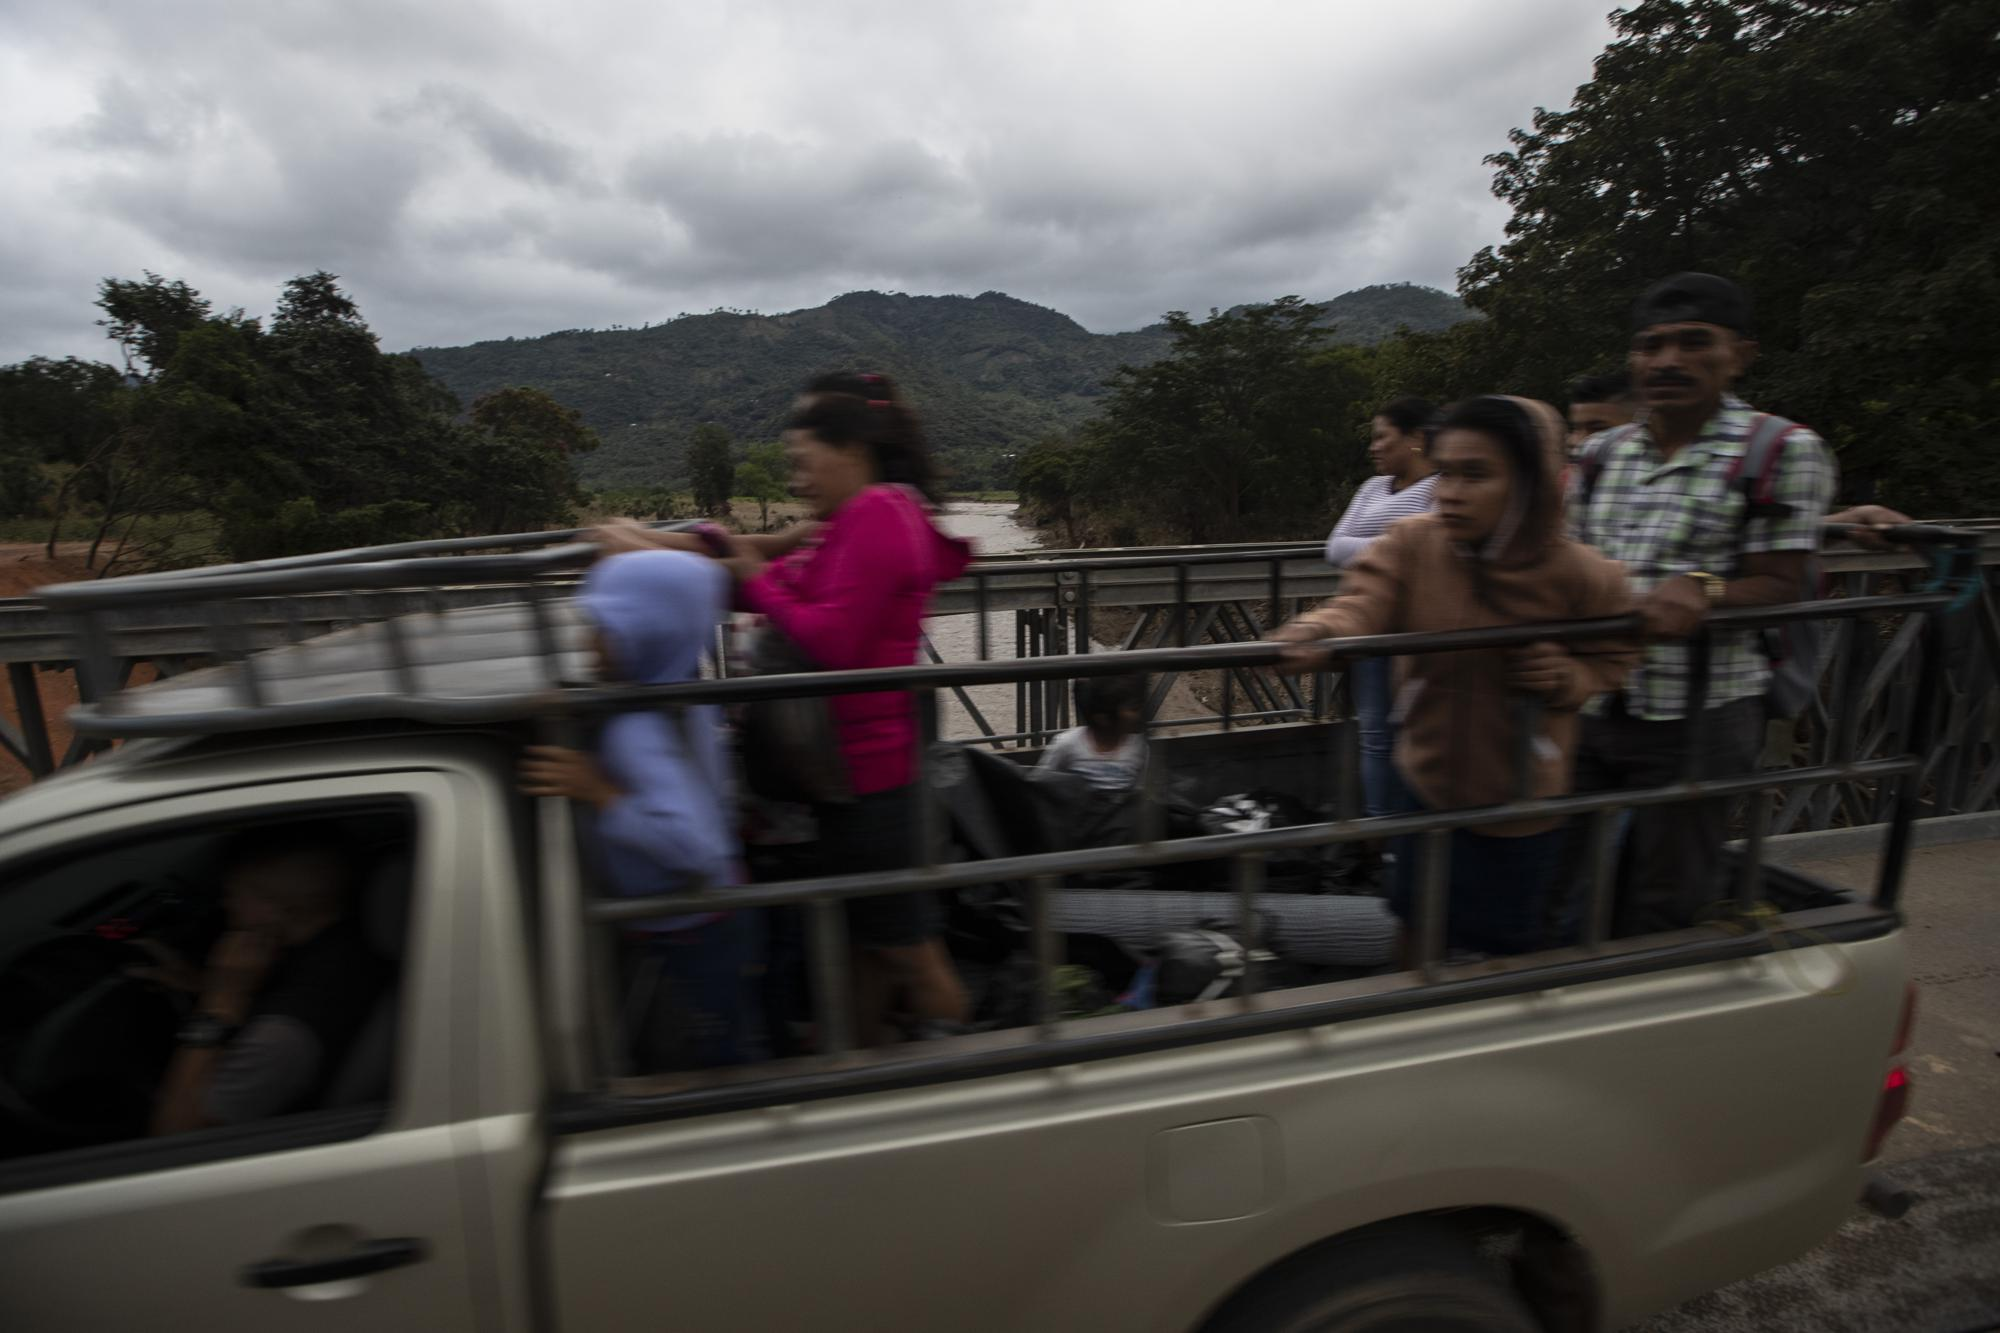 People ride on a temporary replacement bridge across the Jupilingo River to Tizamarte, Guatemala, Tuesday, Dec. 8, 2020, after the river overflowed during Hurricane Eta. President Joe Biden put Vice President Kamala Harris in charge of finding ways to address the root causes of migration, including poverty, corruption, violence and climate change. (AP Photo/Moises Castillo)